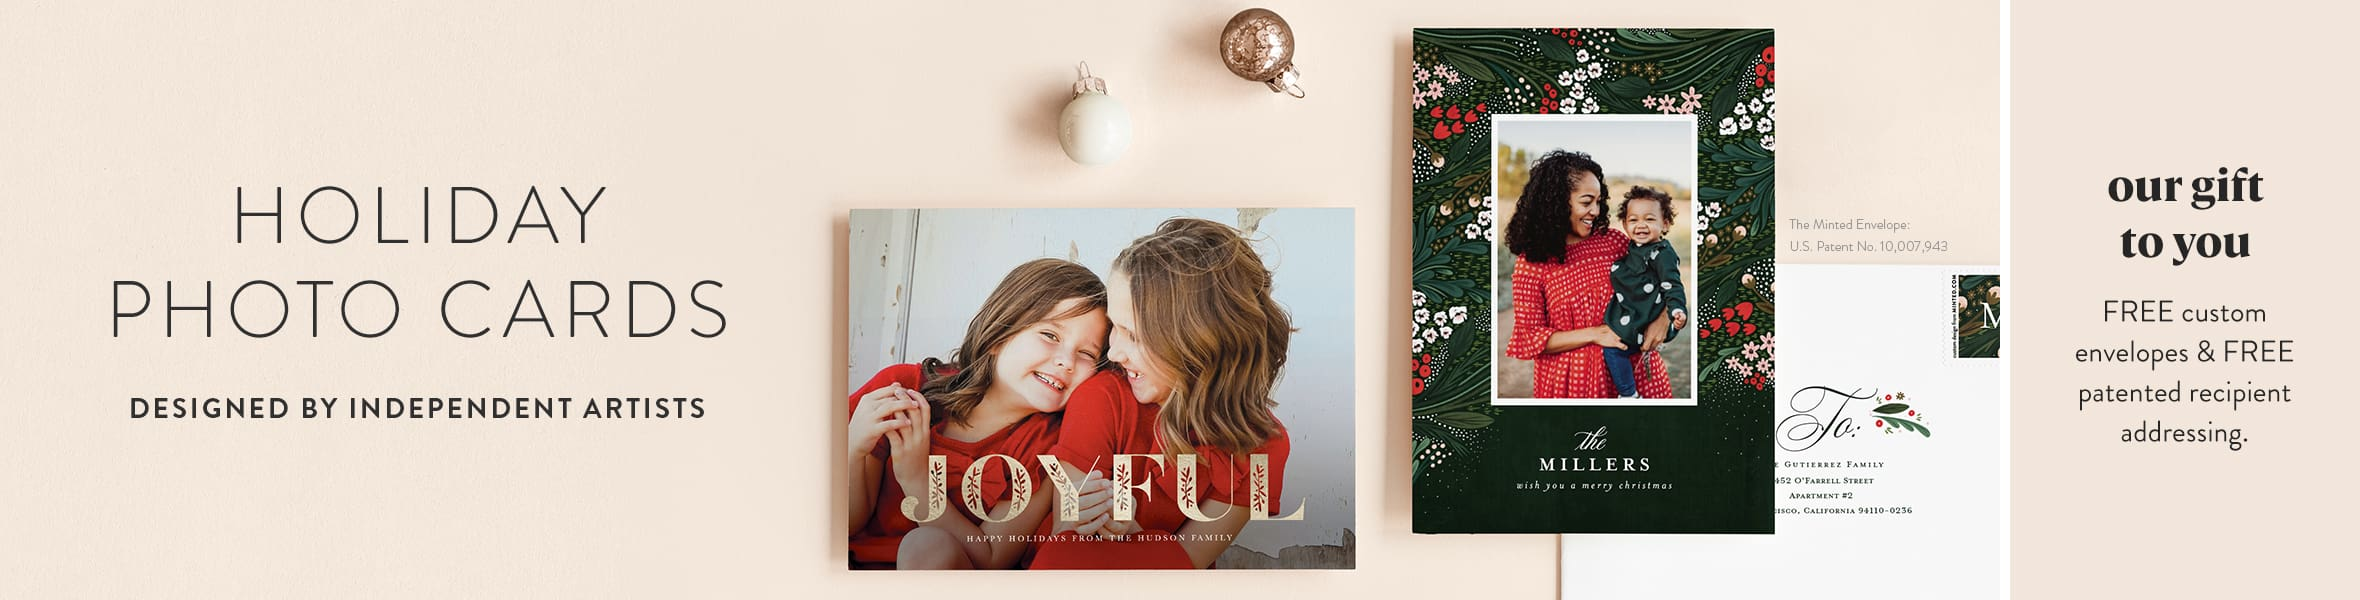 Holiday Photo Cards